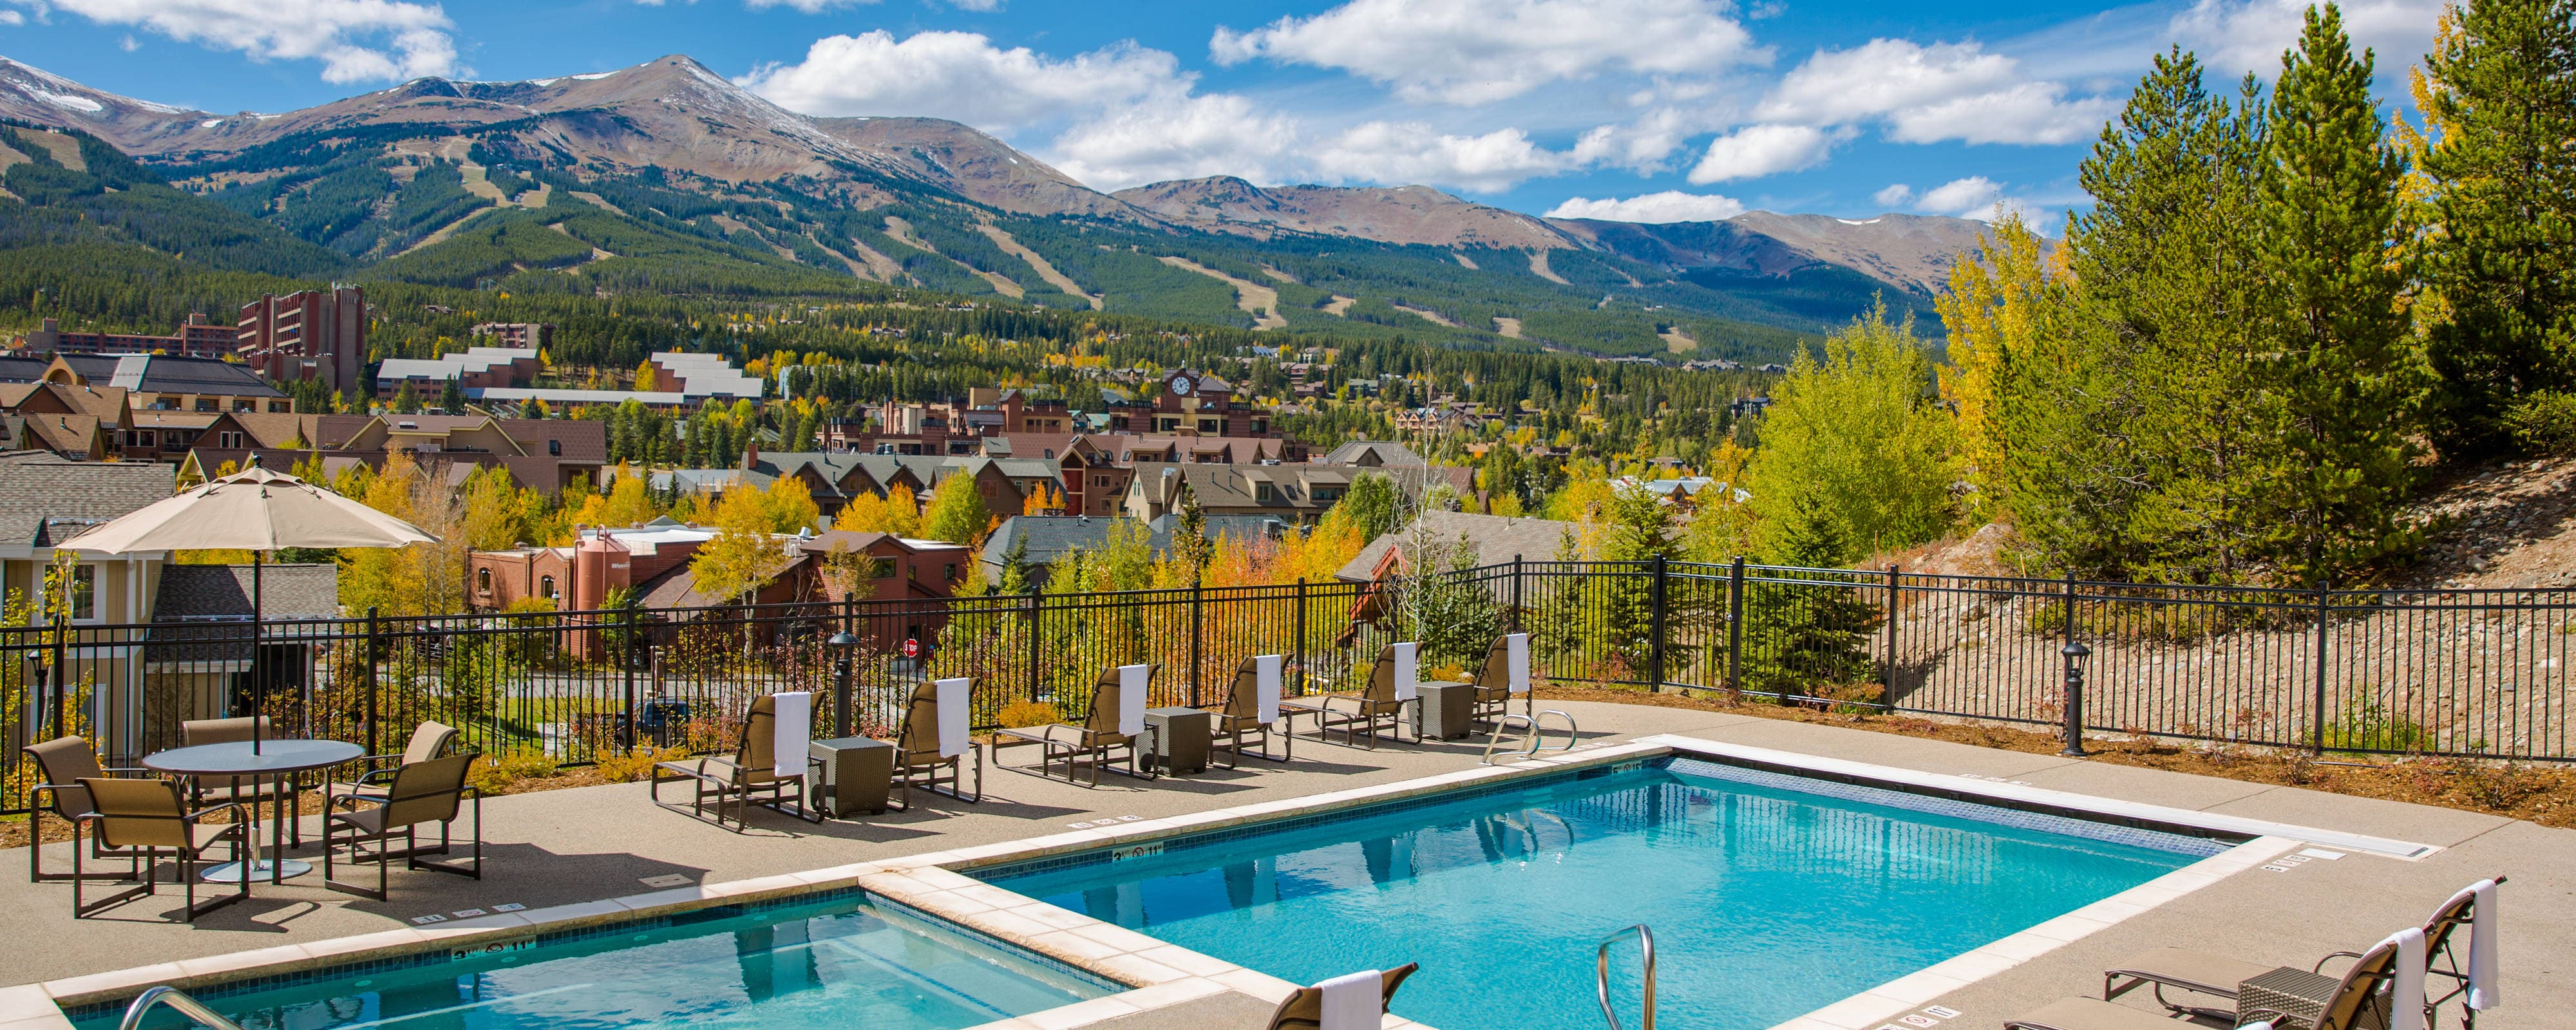 breckenridge hotel with gym and pool residence inn. Black Bedroom Furniture Sets. Home Design Ideas